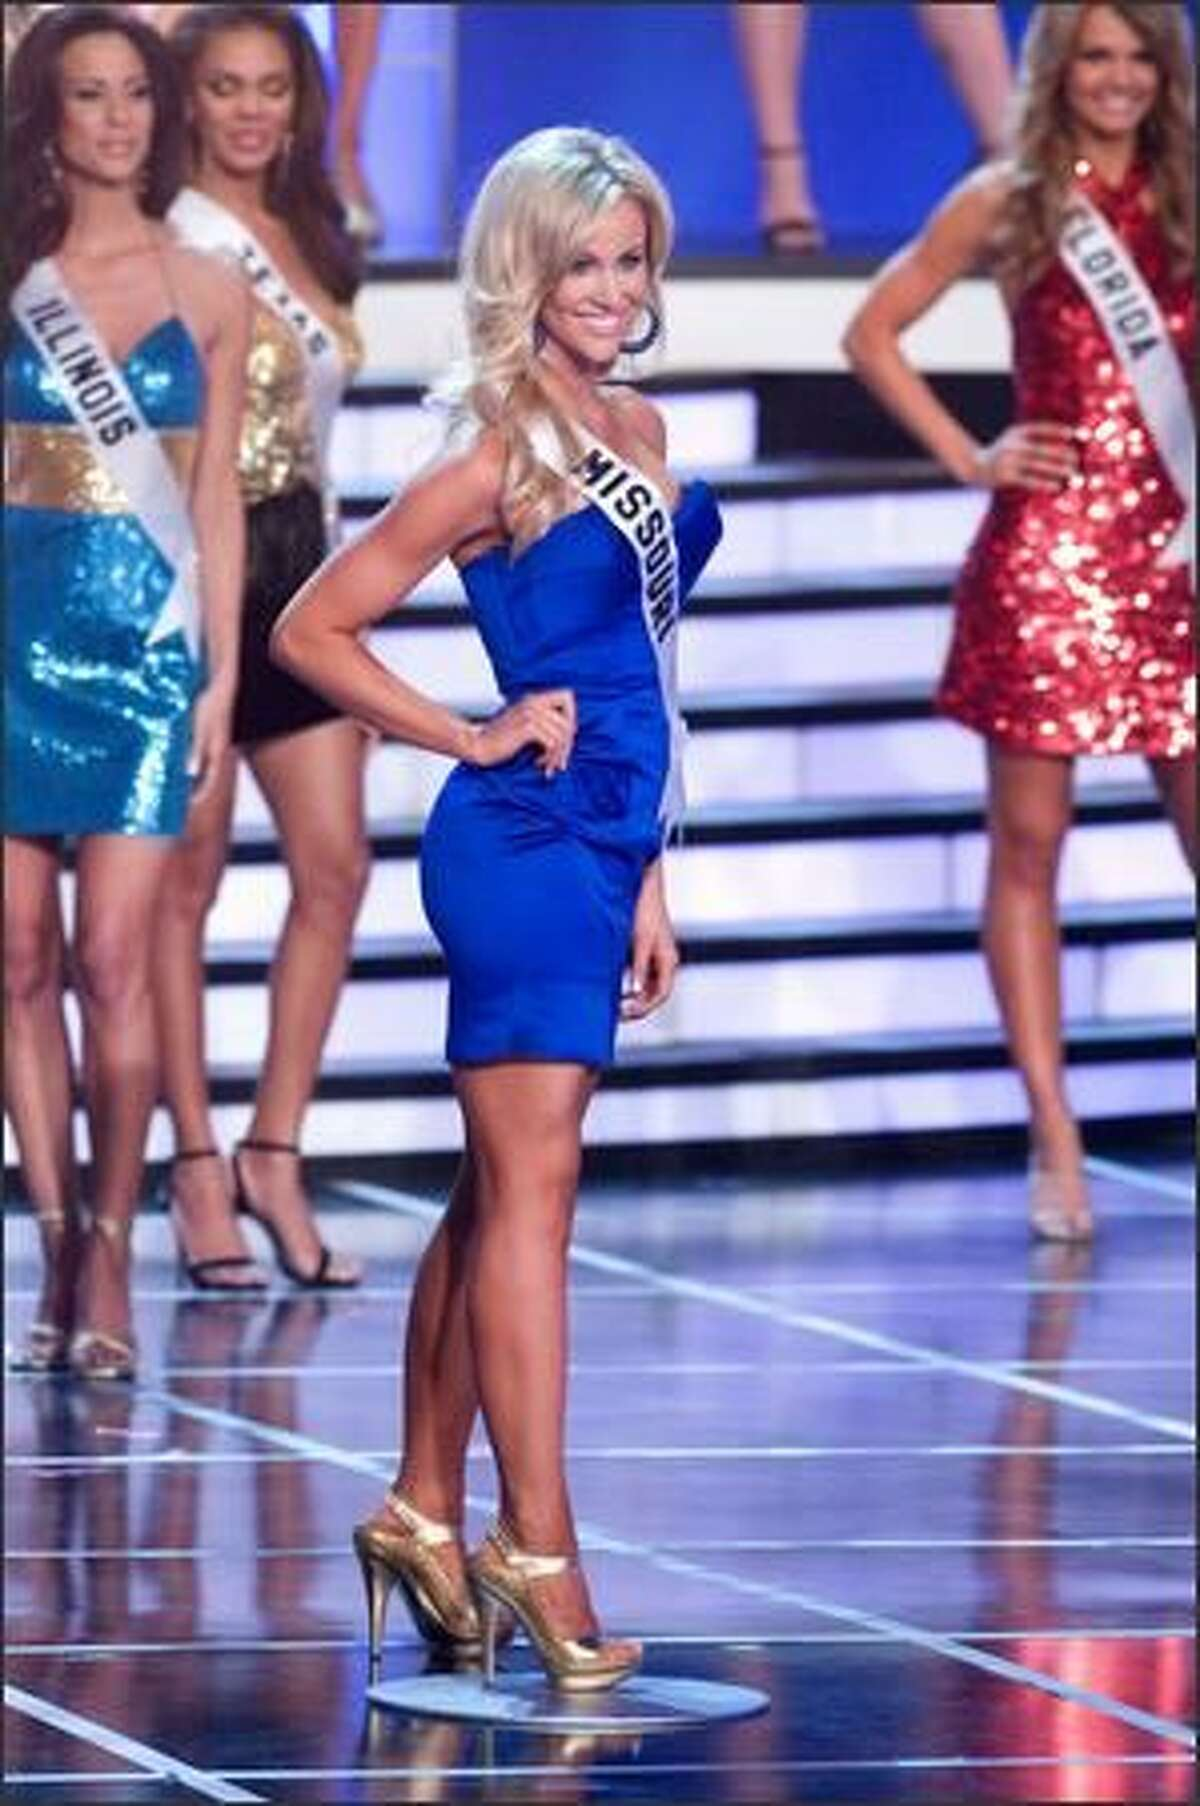 Candice Crawford, 21, Miss Missouri USA 2008 from Columbia, was the fifth of the top 15 semifinalists to be called. Photo: Miss Universe L.P., LLLP